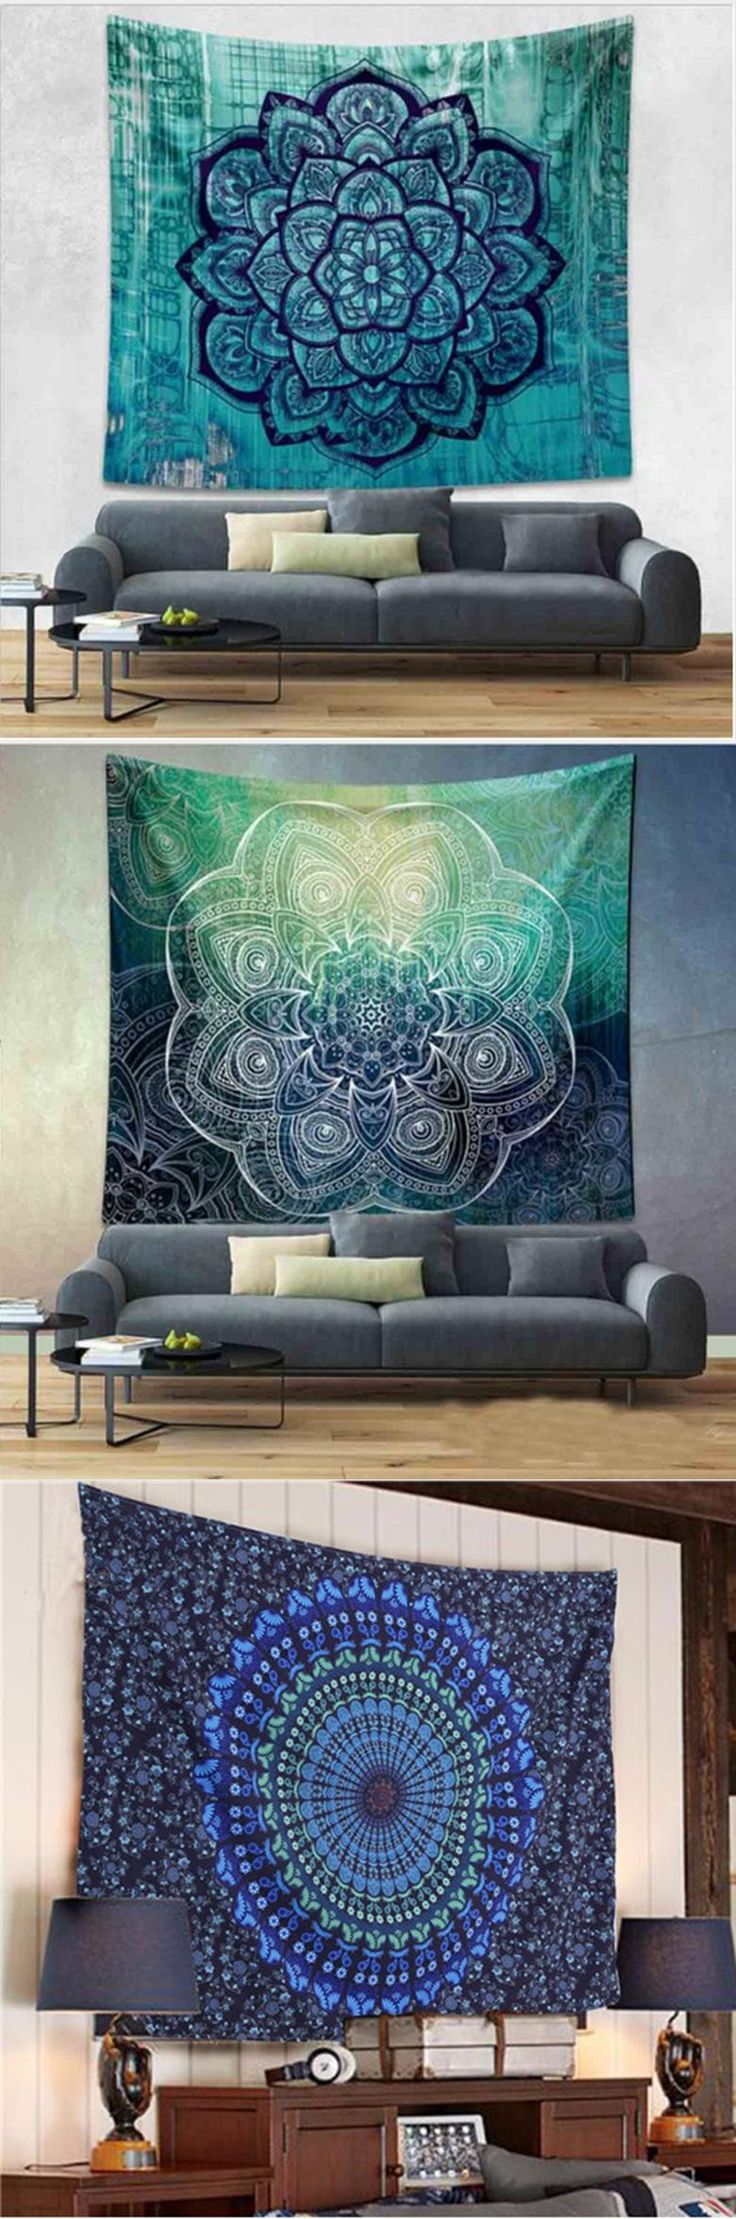 [Visit to Buy] 2017 Gifts Indian Square Mandala Tapestry Throw Mandala Colored Printed Blanket Hippie Beach Towel Yoga Mat Picnic Tablecloth #Advertisement